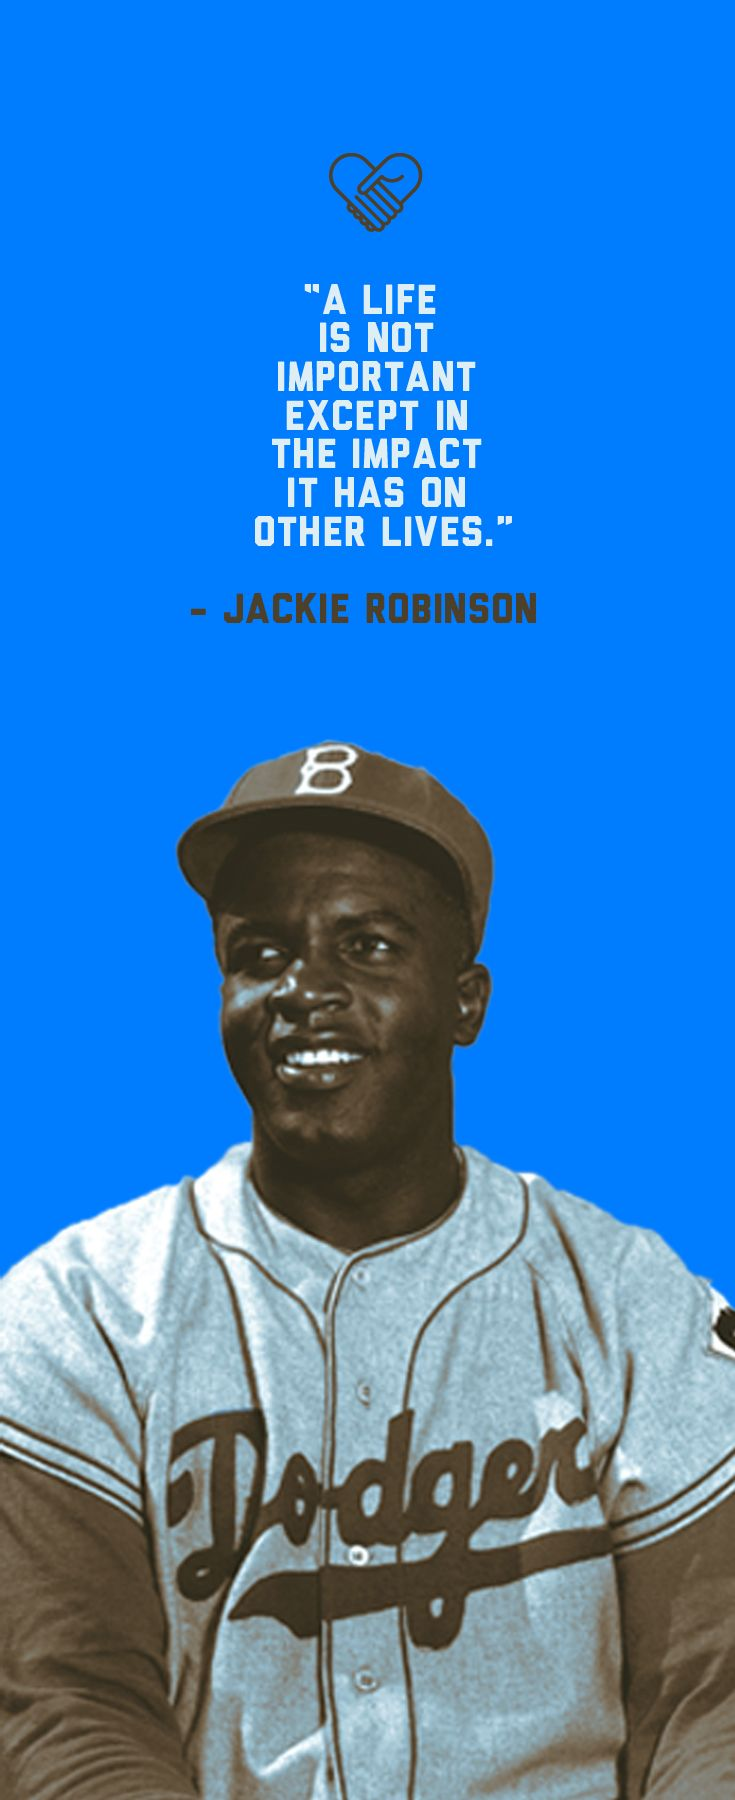 """""""A life is not important except in the impact it has on other lives."""" - Jackie Robinson - today in 1947 he became the first ever African-American in the MLB!"""